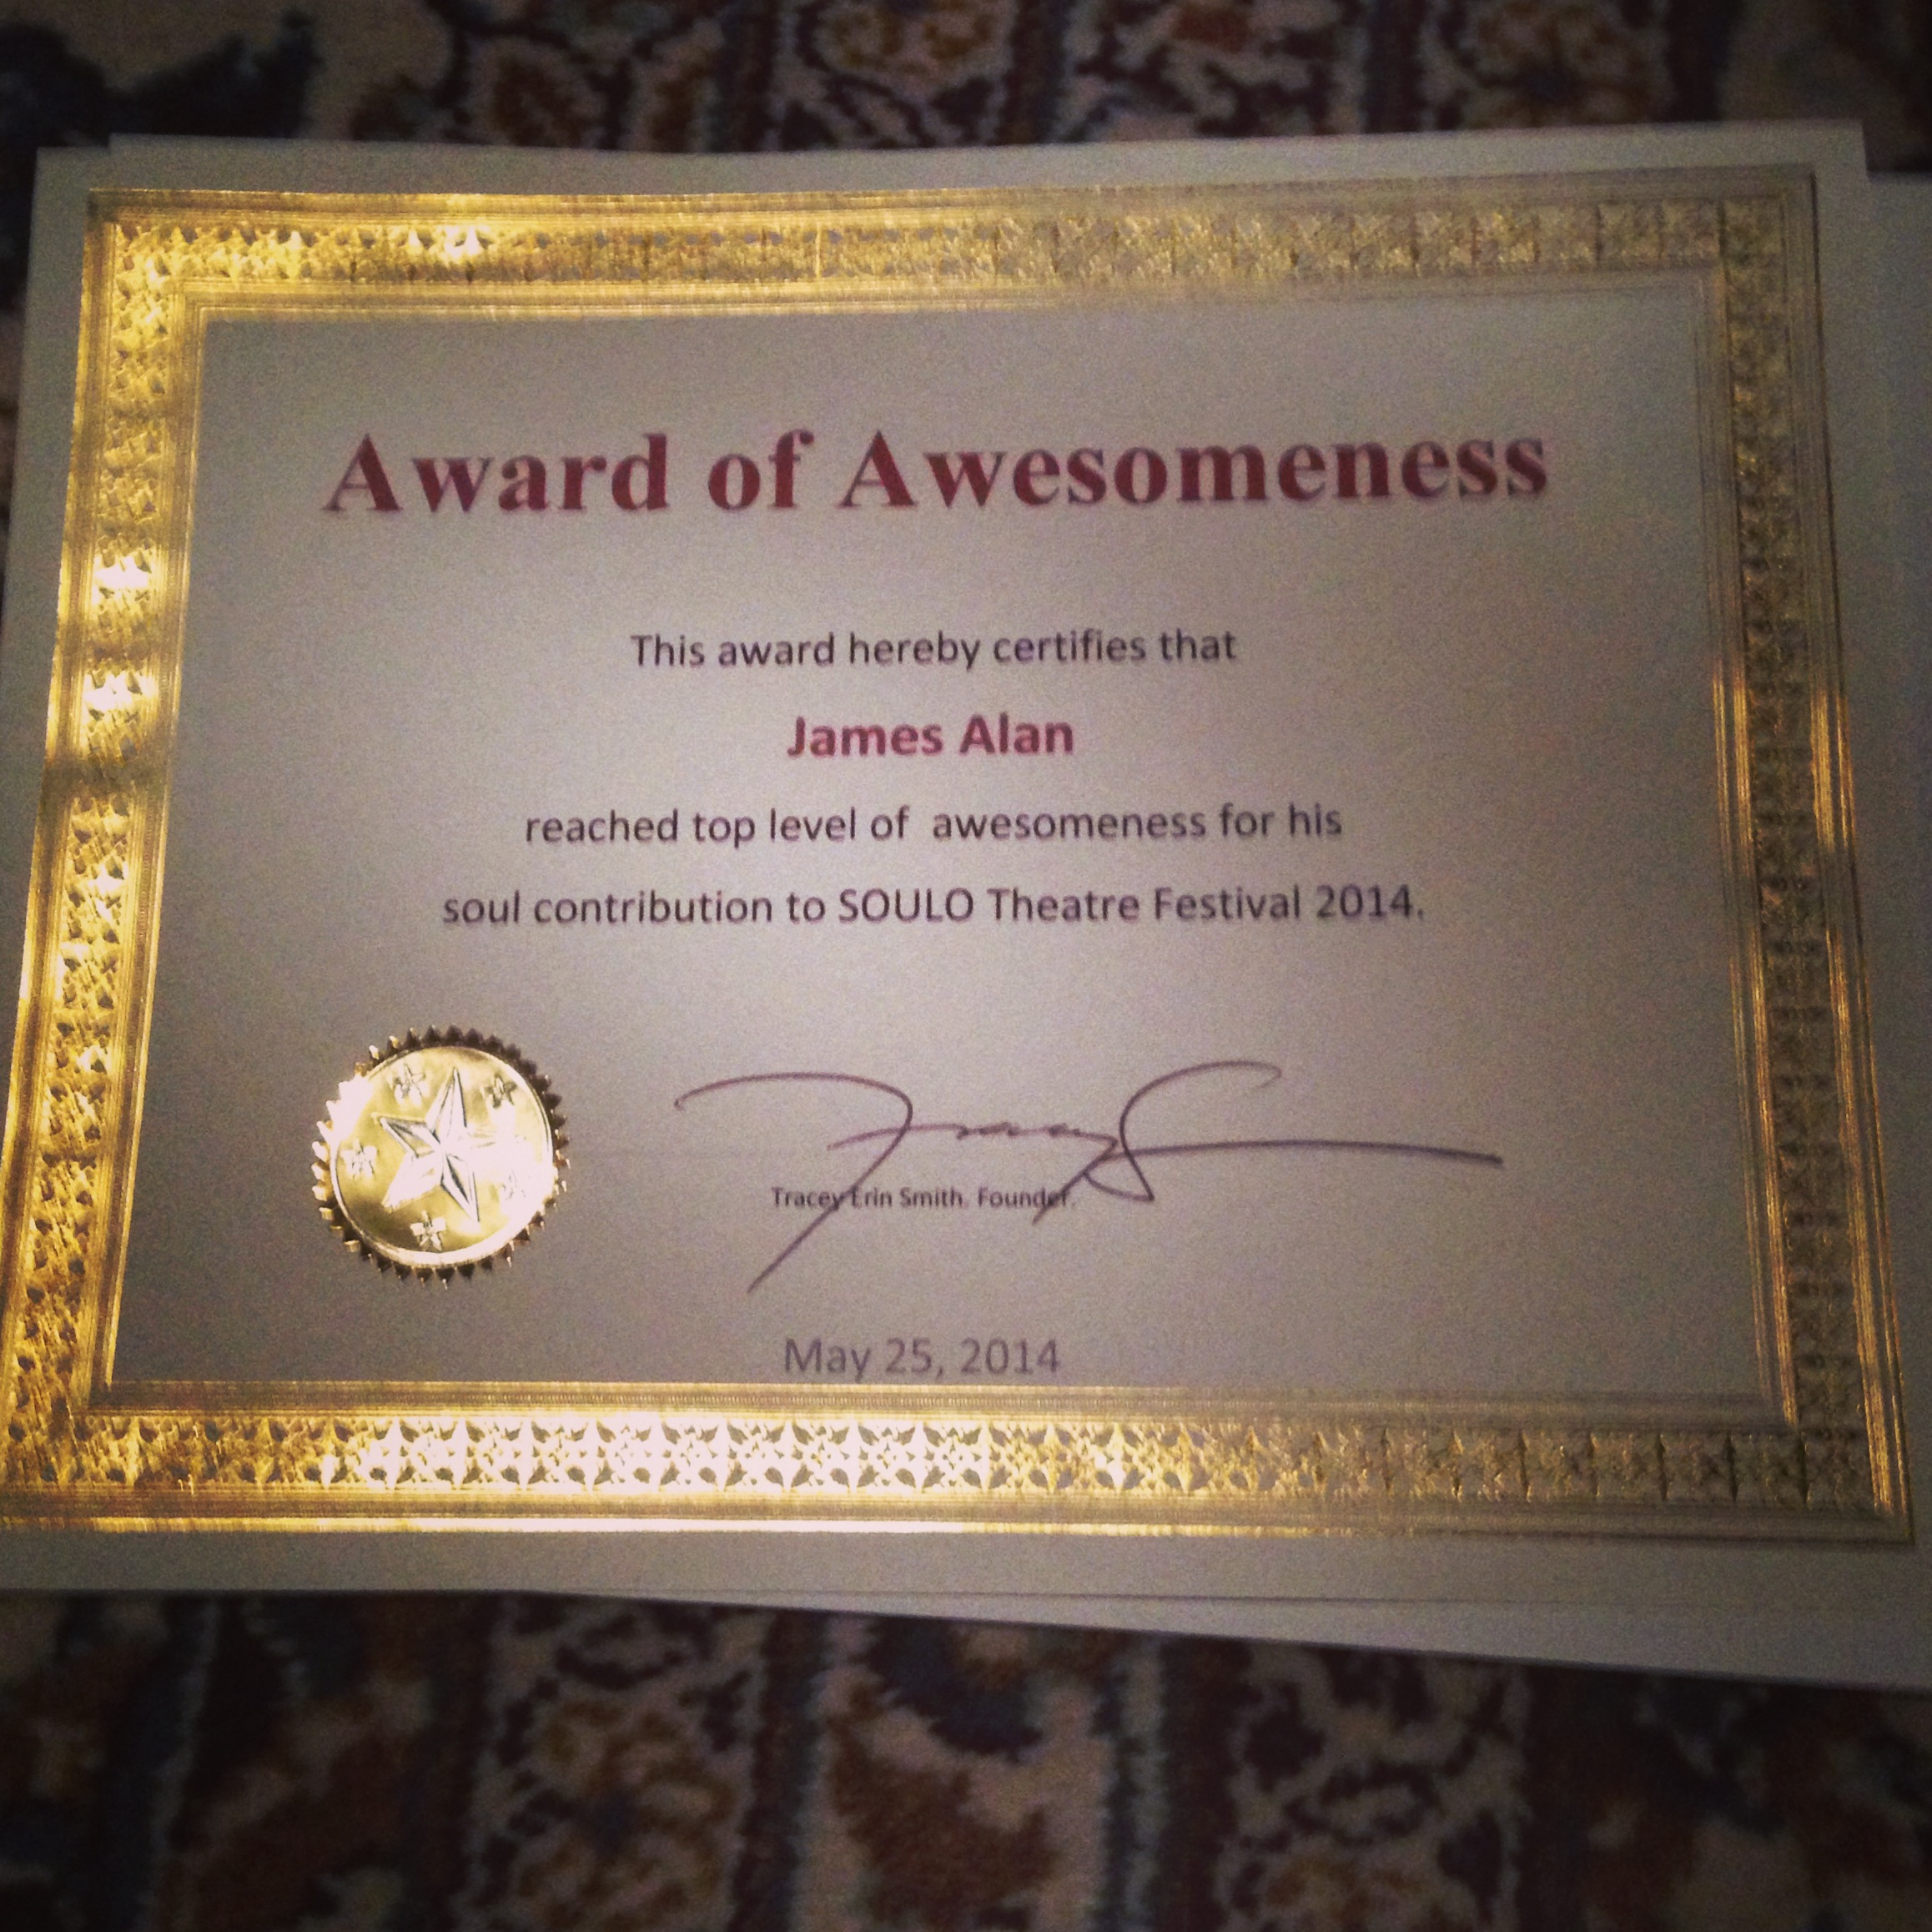 This is what an Award of Awesomeness looks like.